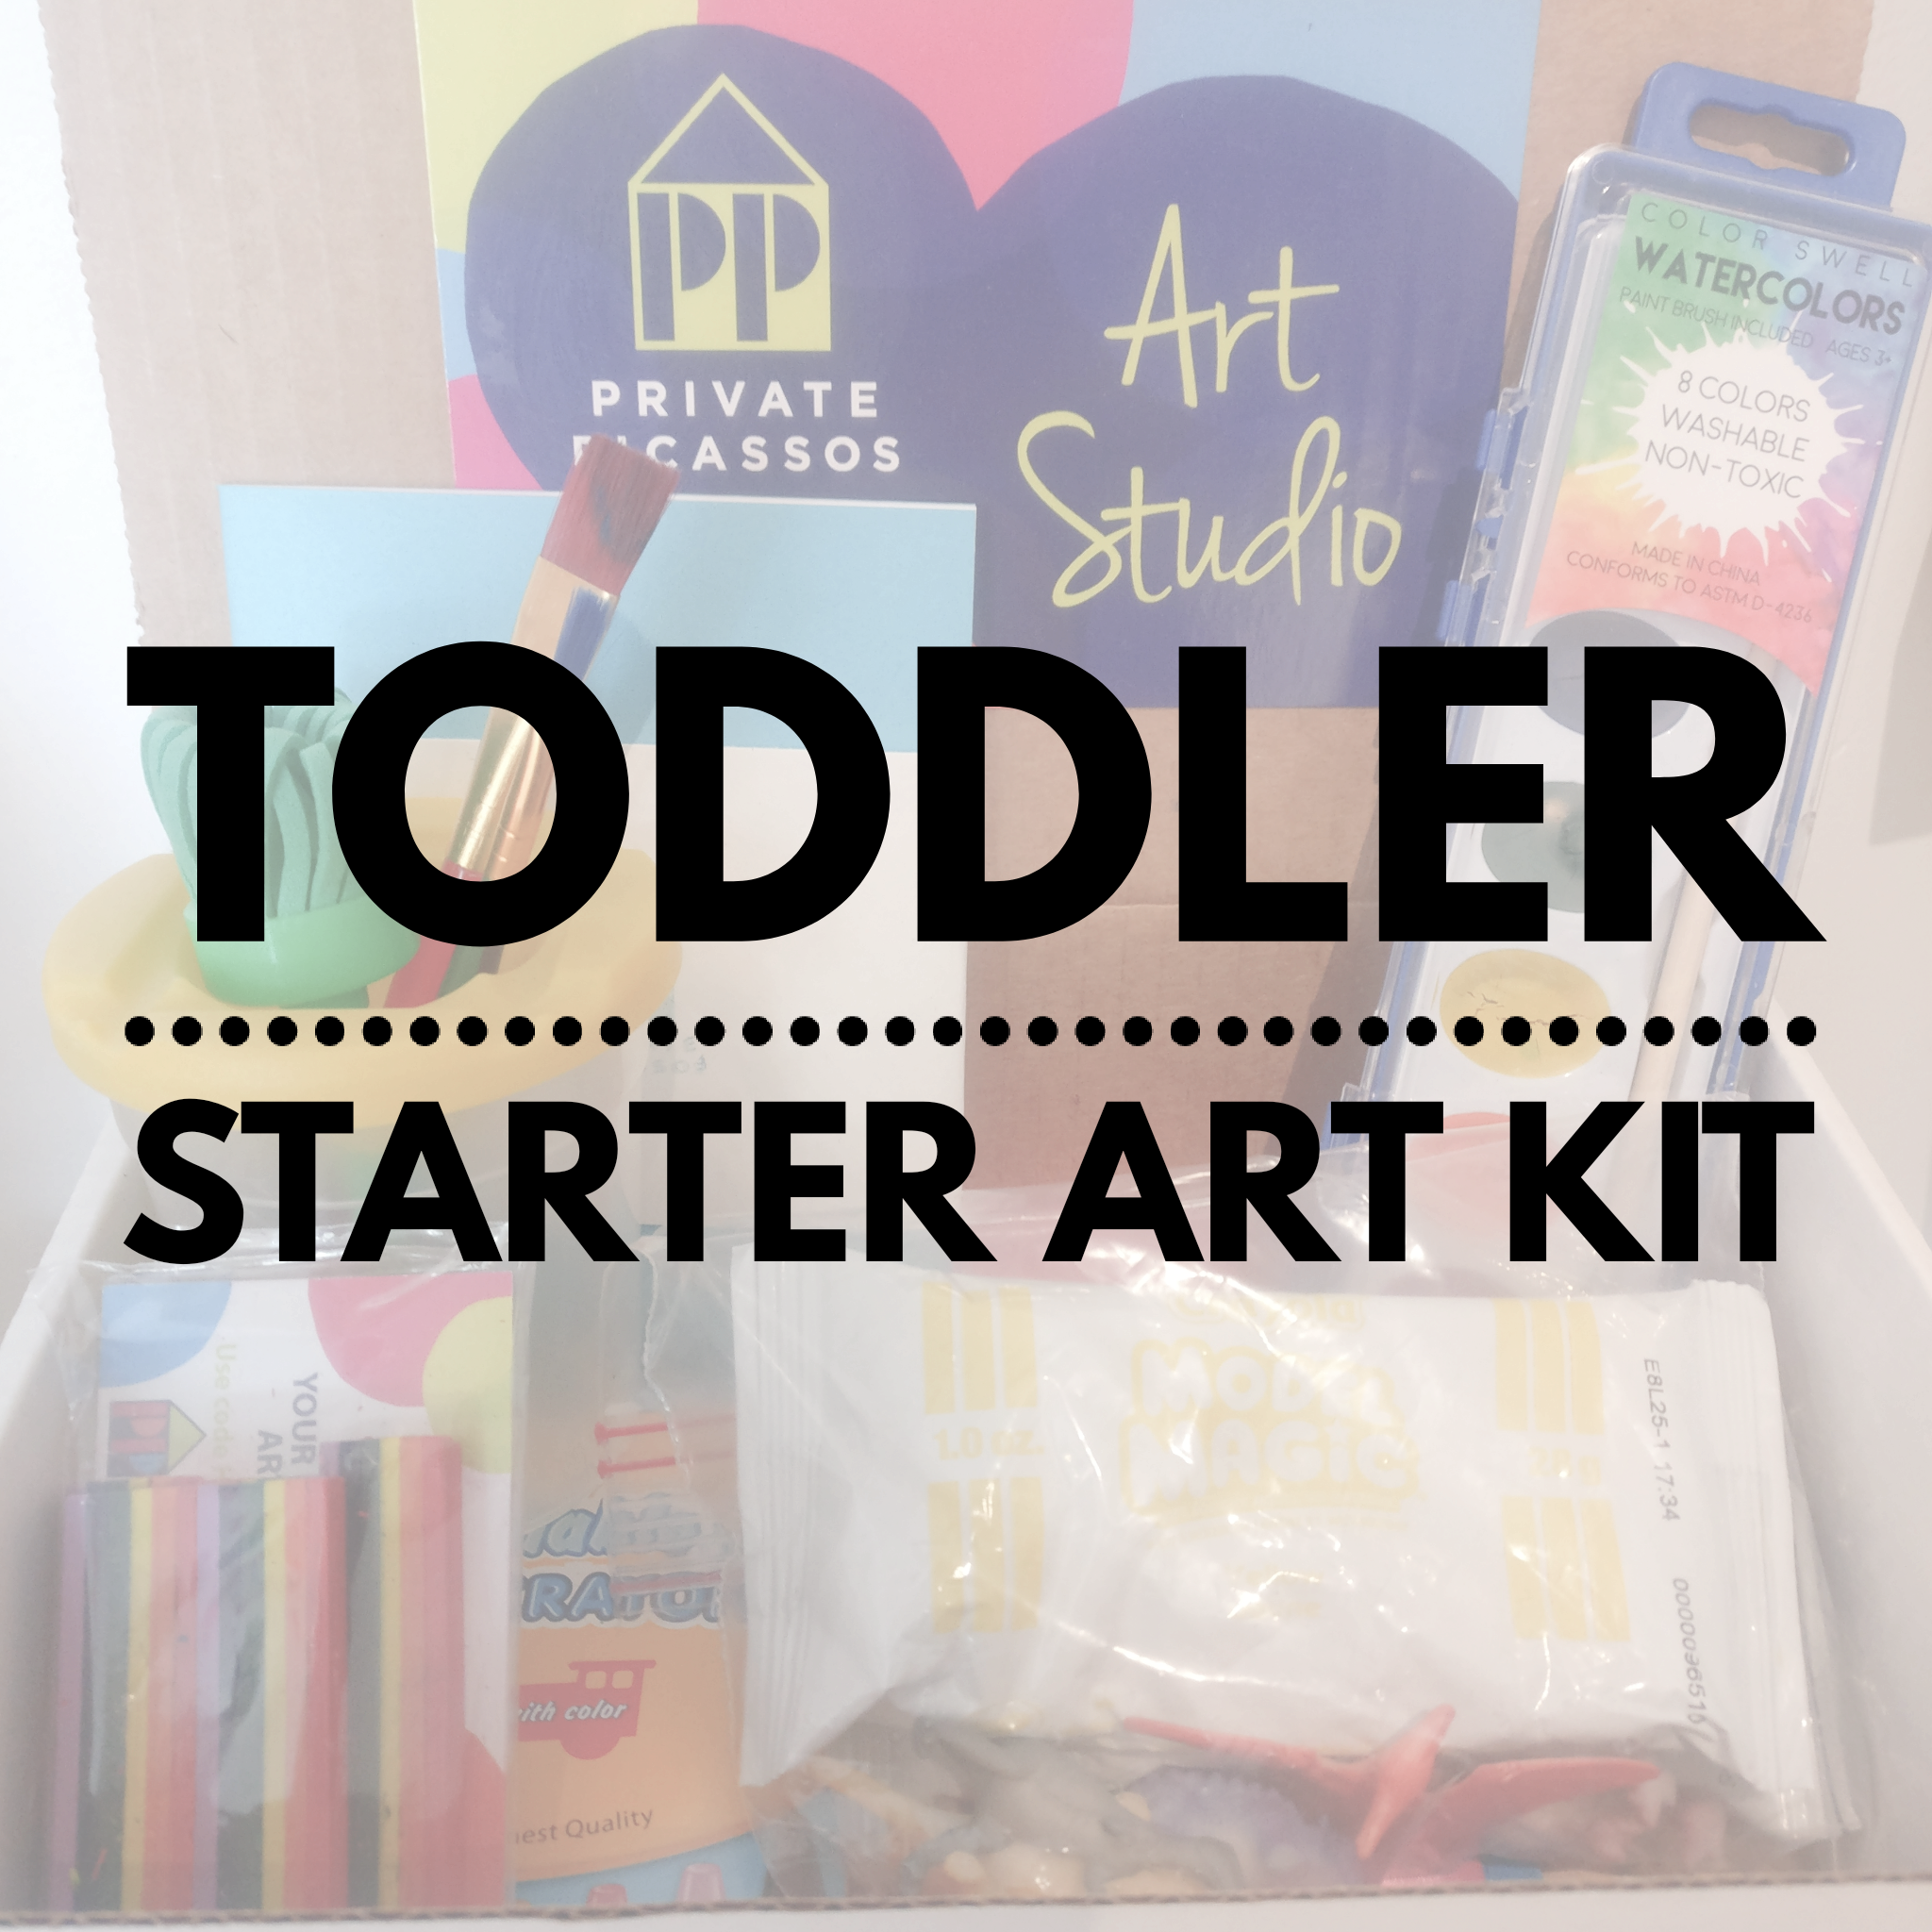 Get your toddler started with their first set of art supplies!  Included in this kit are the following: no spill paint cup, two paint brushes or rubber paint scraper, foam textured paint brush, washable watercolor set with paint brush, rainbow crayons, washable chubby crayons (or foam rollers), Private Picassos' Fossil Making Kit, which includes two packs of Model Magic Clay and dinosaur figurines, Private Picassos' sketchbook and a Private Picassos' art smock.